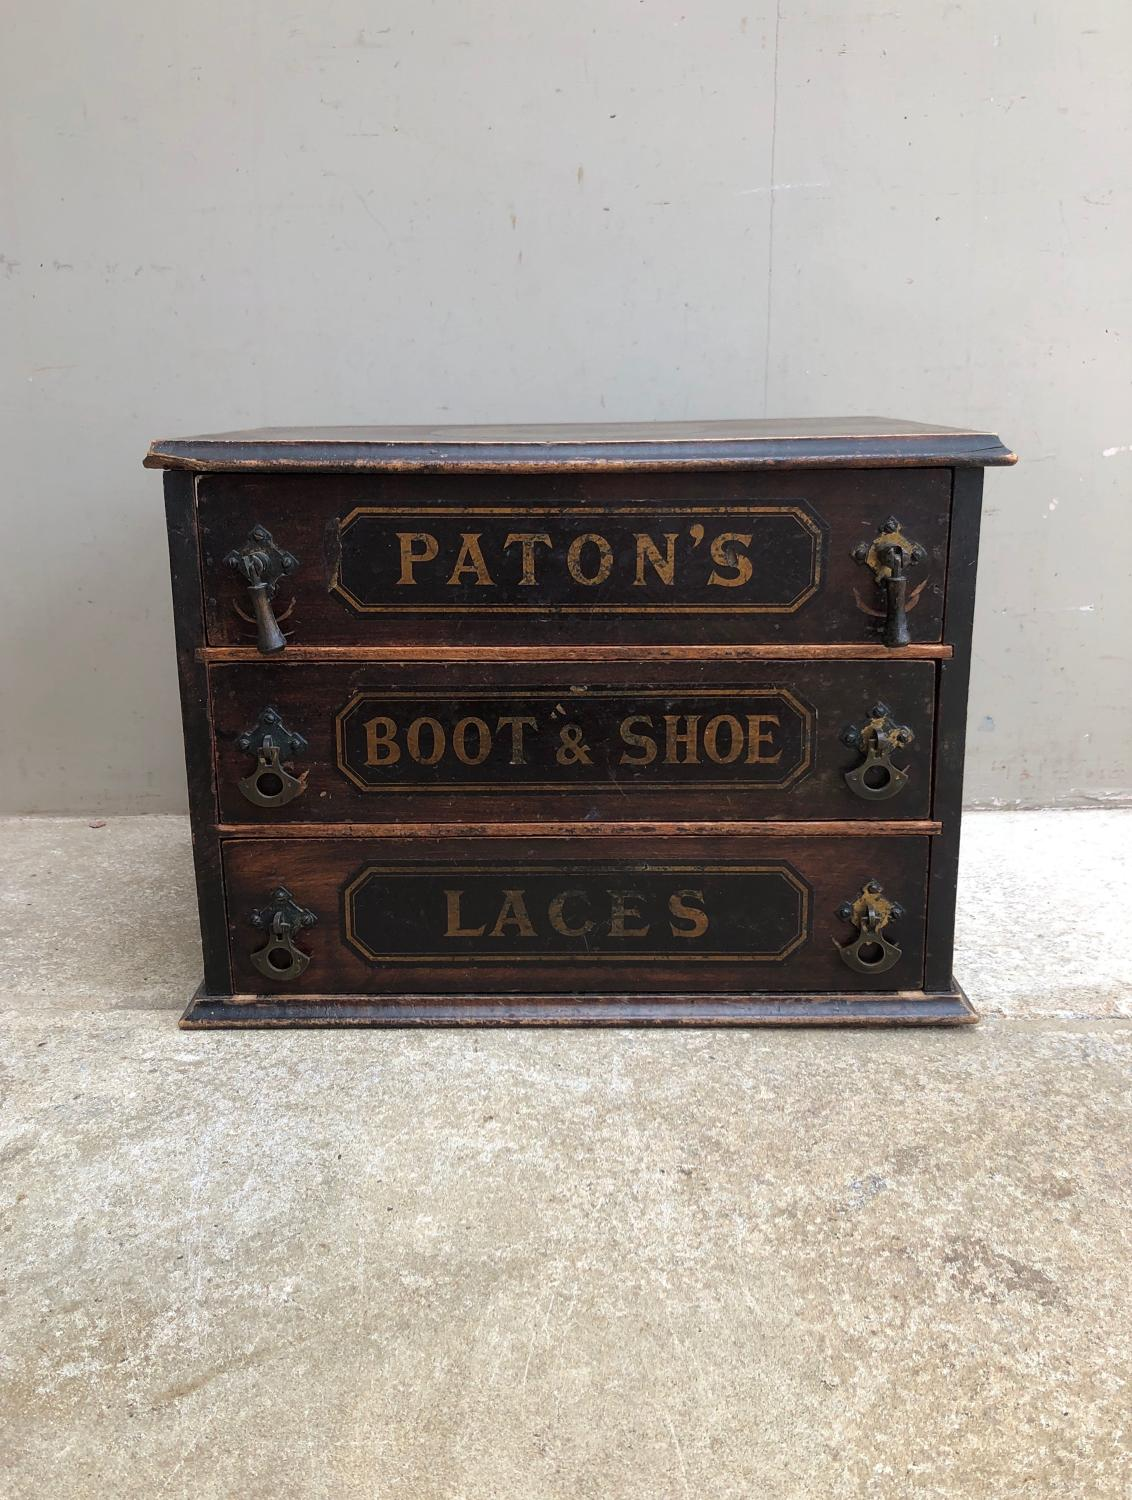 Edwardian Shops Advertising Drawers - Patons Boot & Shoe Laces